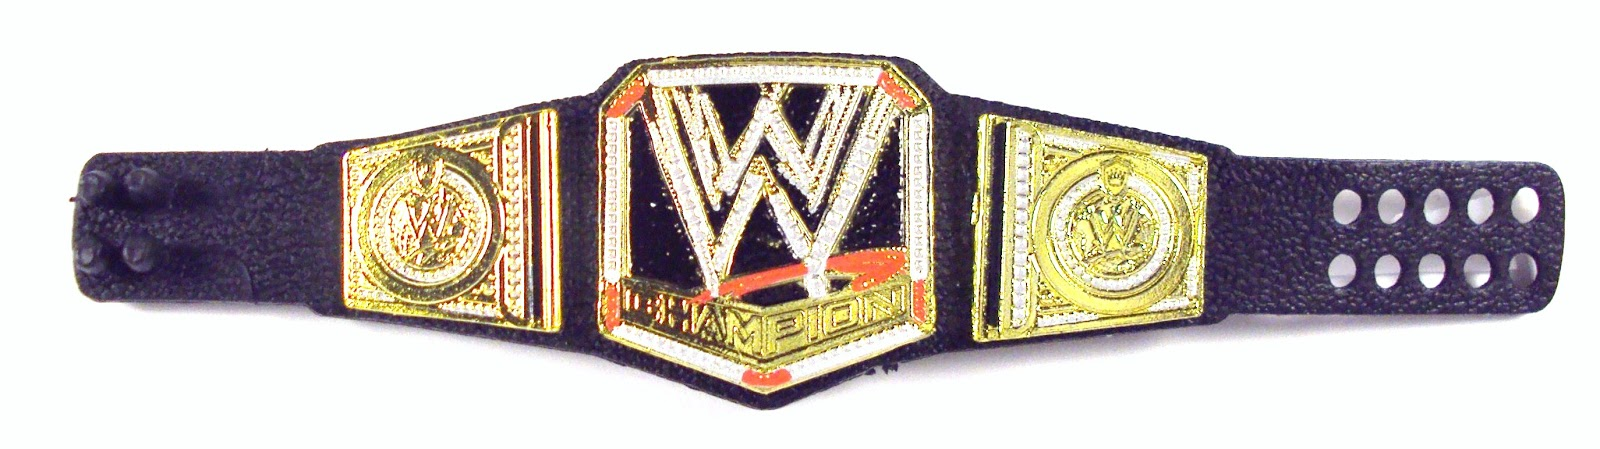 3bs toy hive wwe title belts